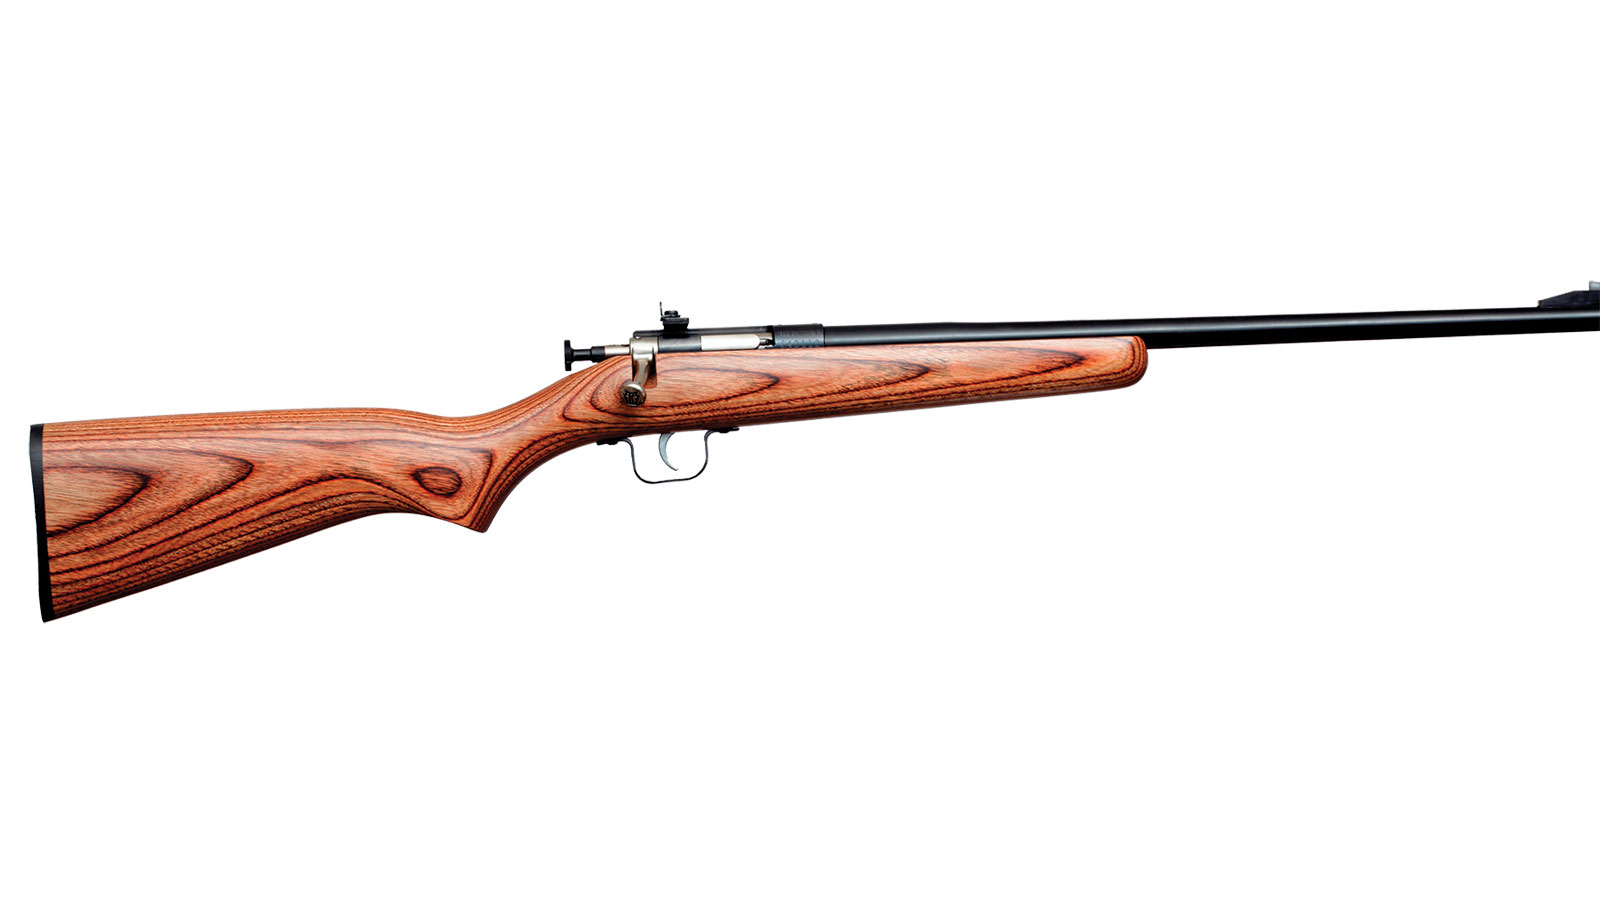 Crickett Gen 2 Bolt Action 22 LR 16.5 Inch 1 Rd Laminate Stock Brown| Black